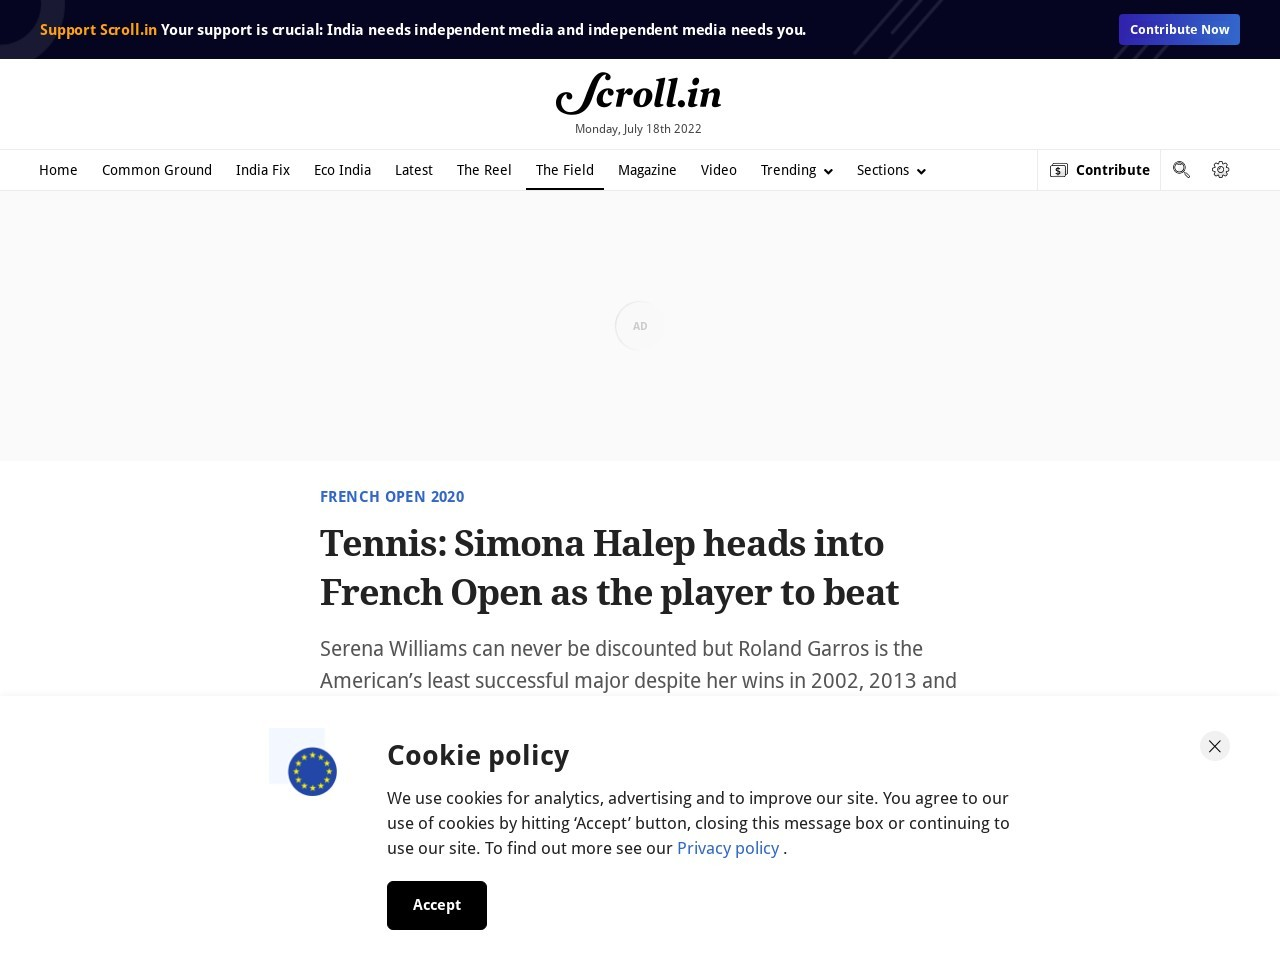 Tennis: Simona Halep heads into French Open as the player to beat